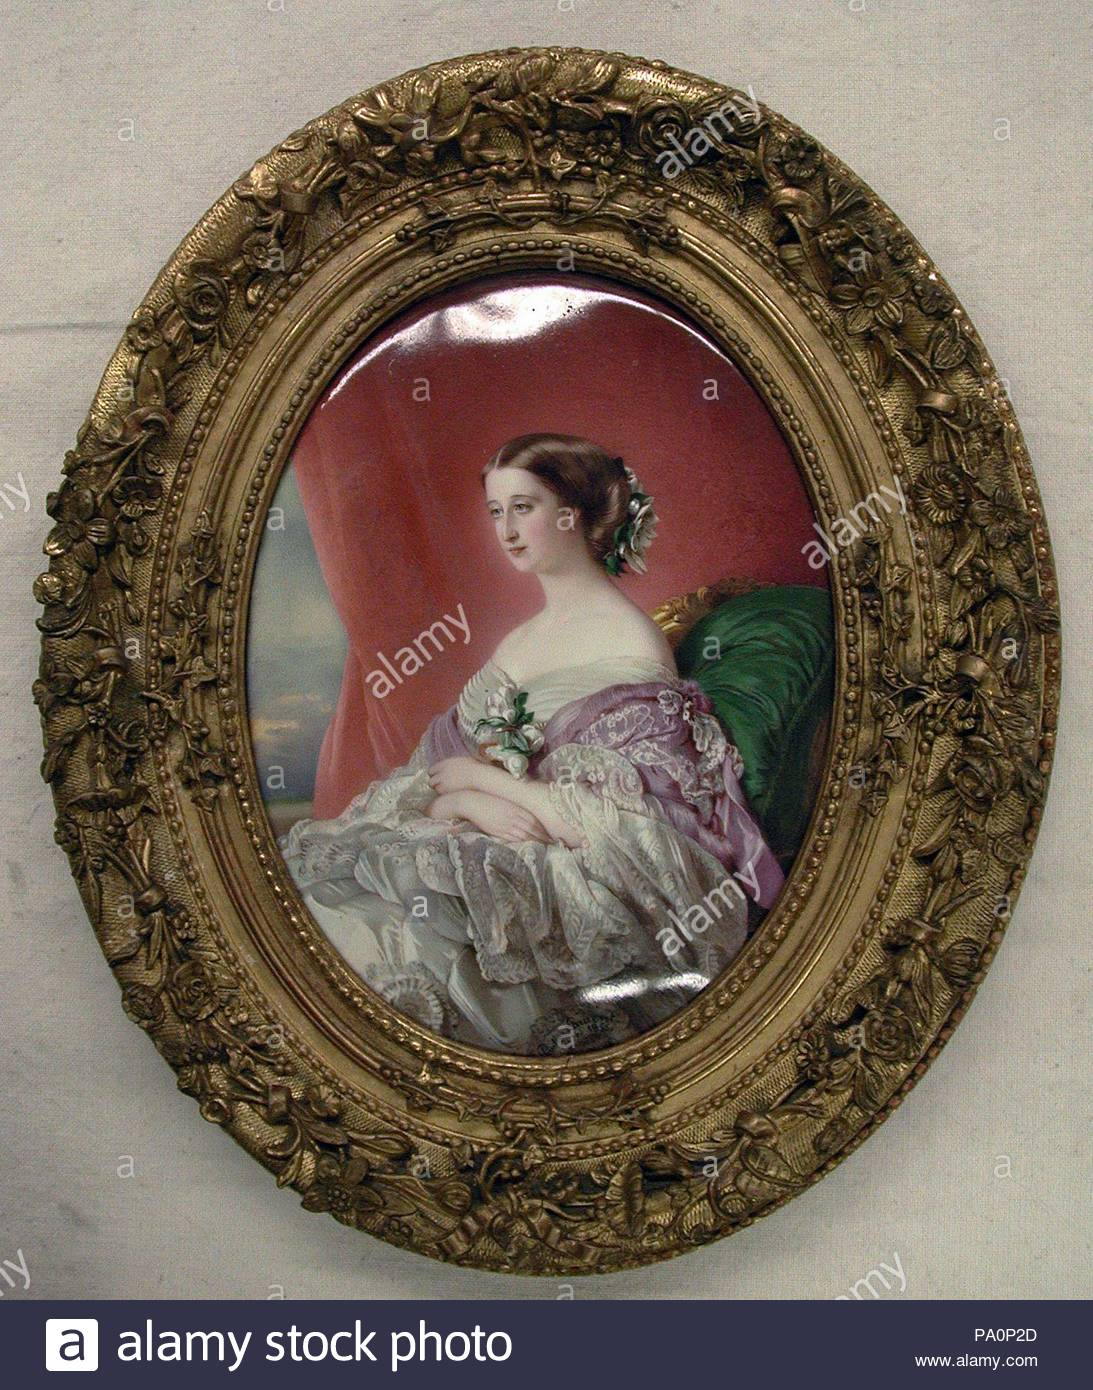 Painting By Franz Xaver Winterhalter Imágenes De Stock & Painting By ...